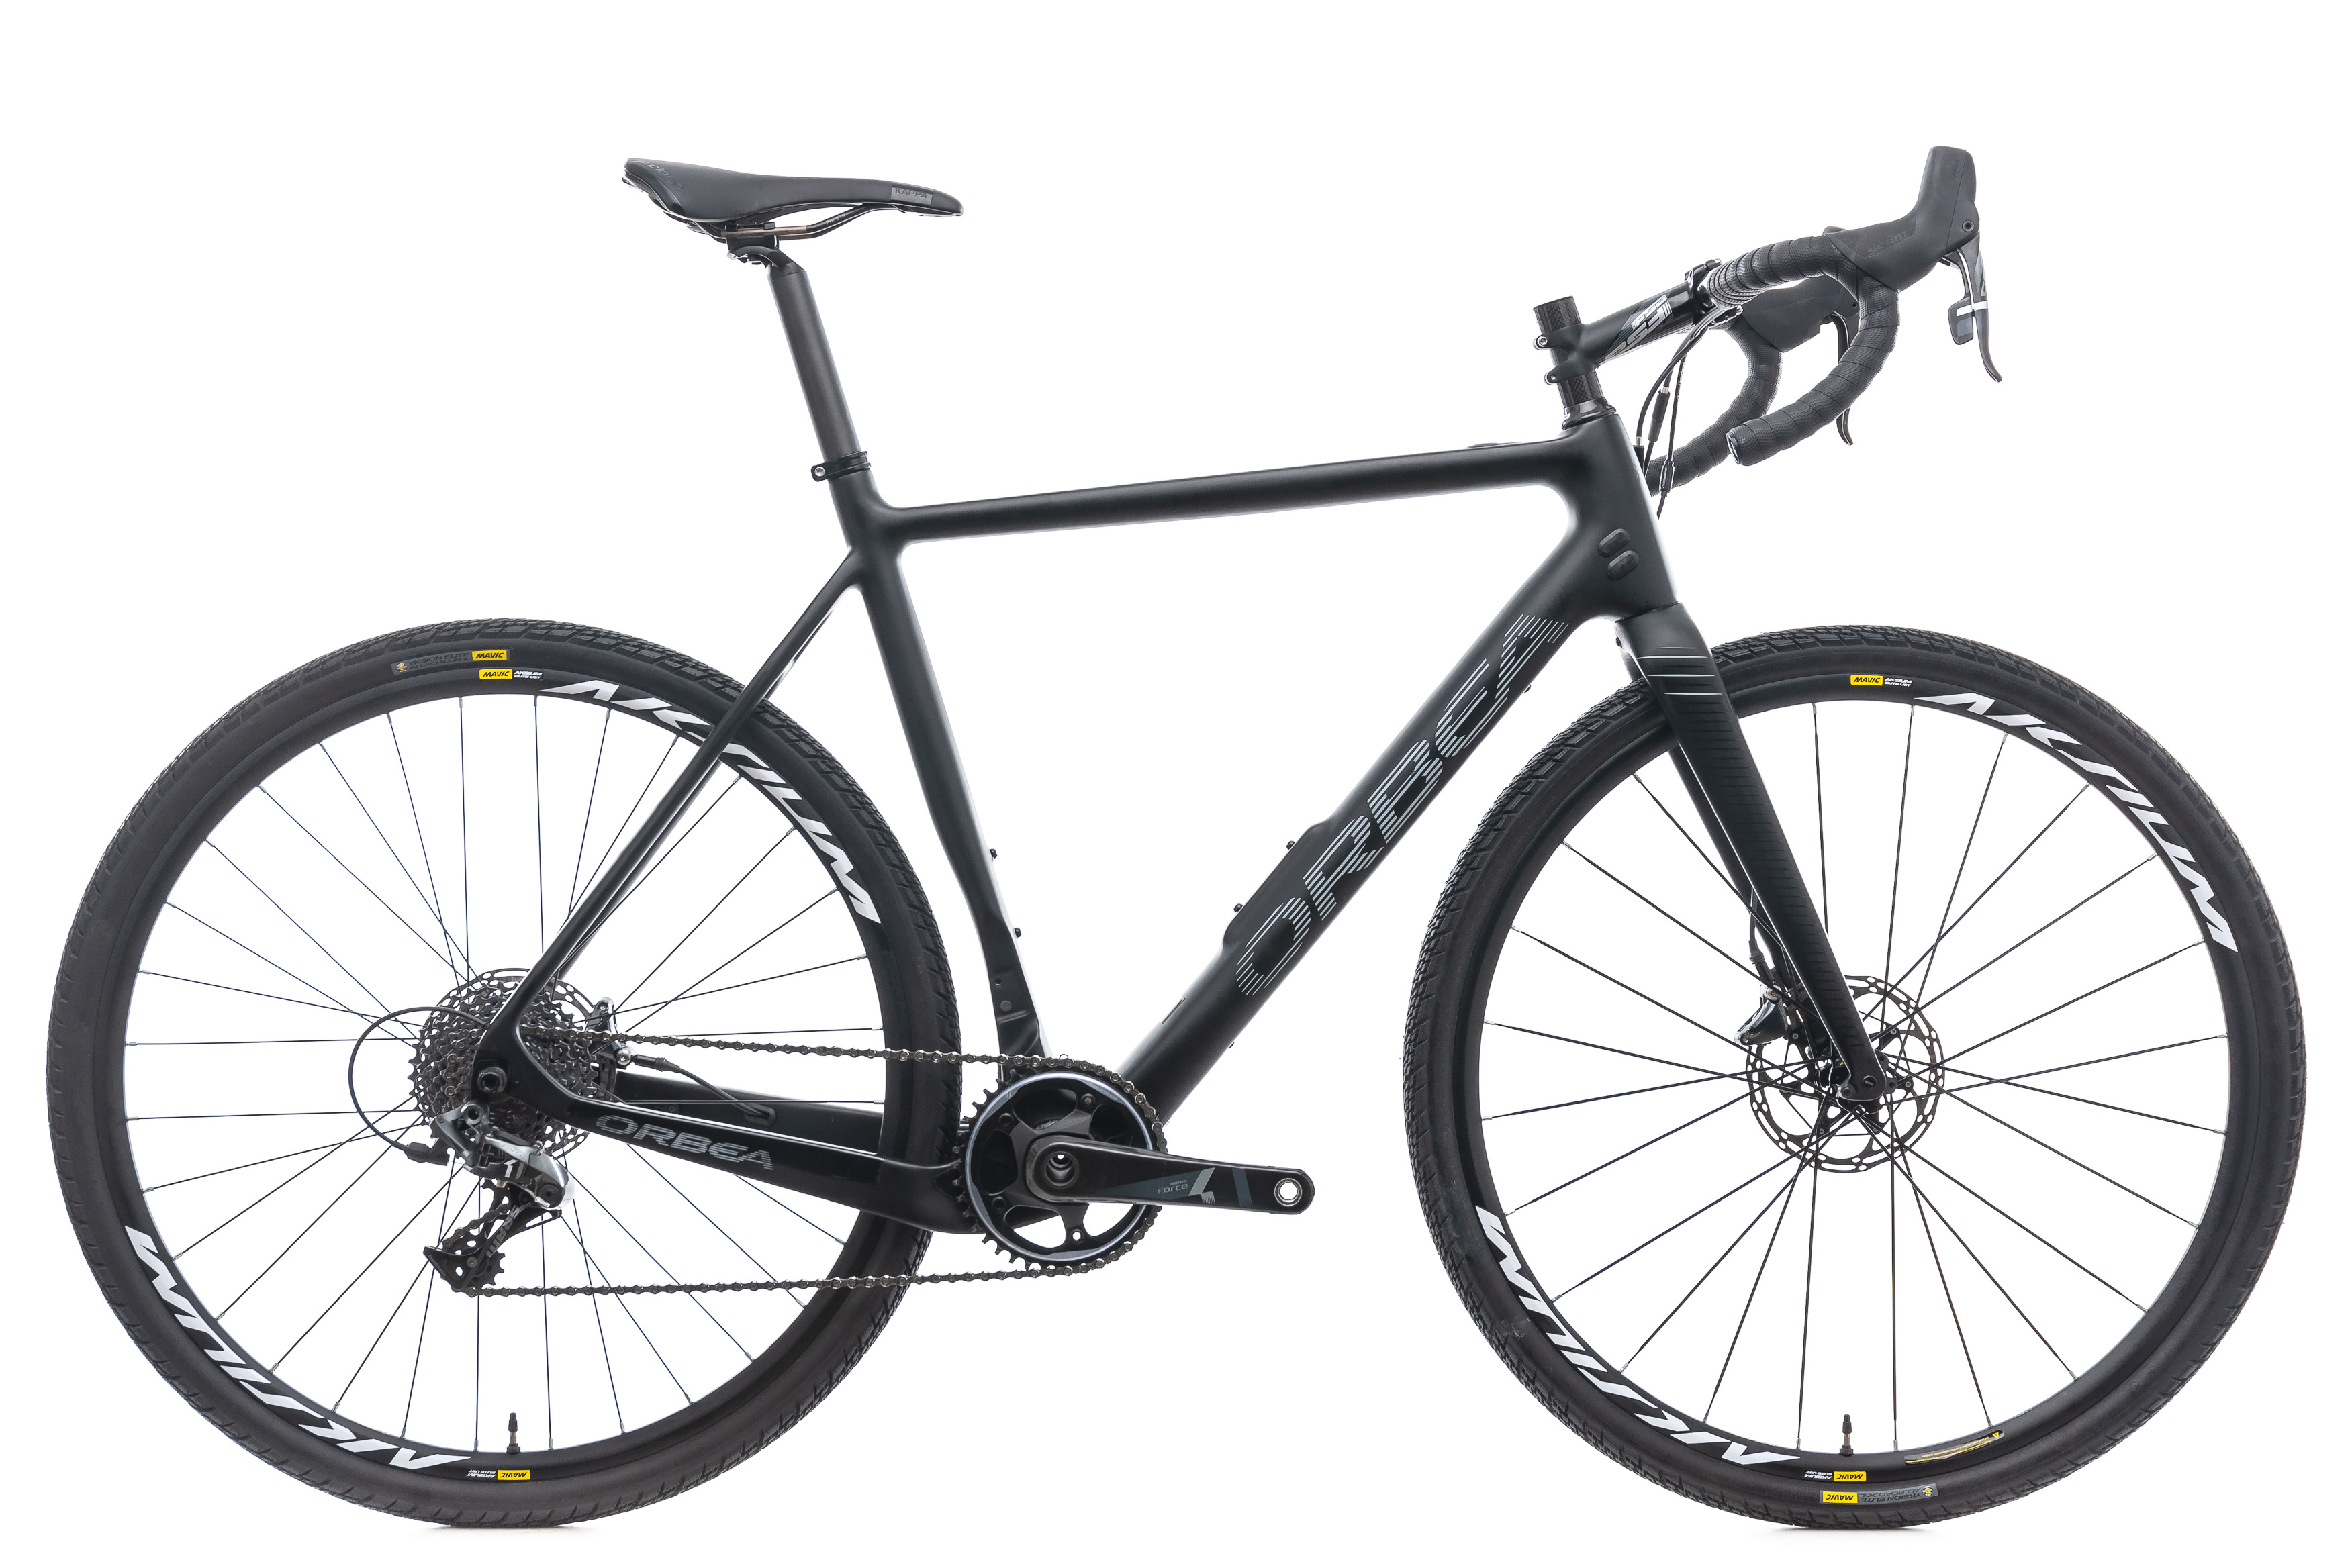 Electric Road Bike >> Details About 2019 Orbea Gain M21 Usa Electric Road Bike X Large Carbon Sram Force 1 Disc